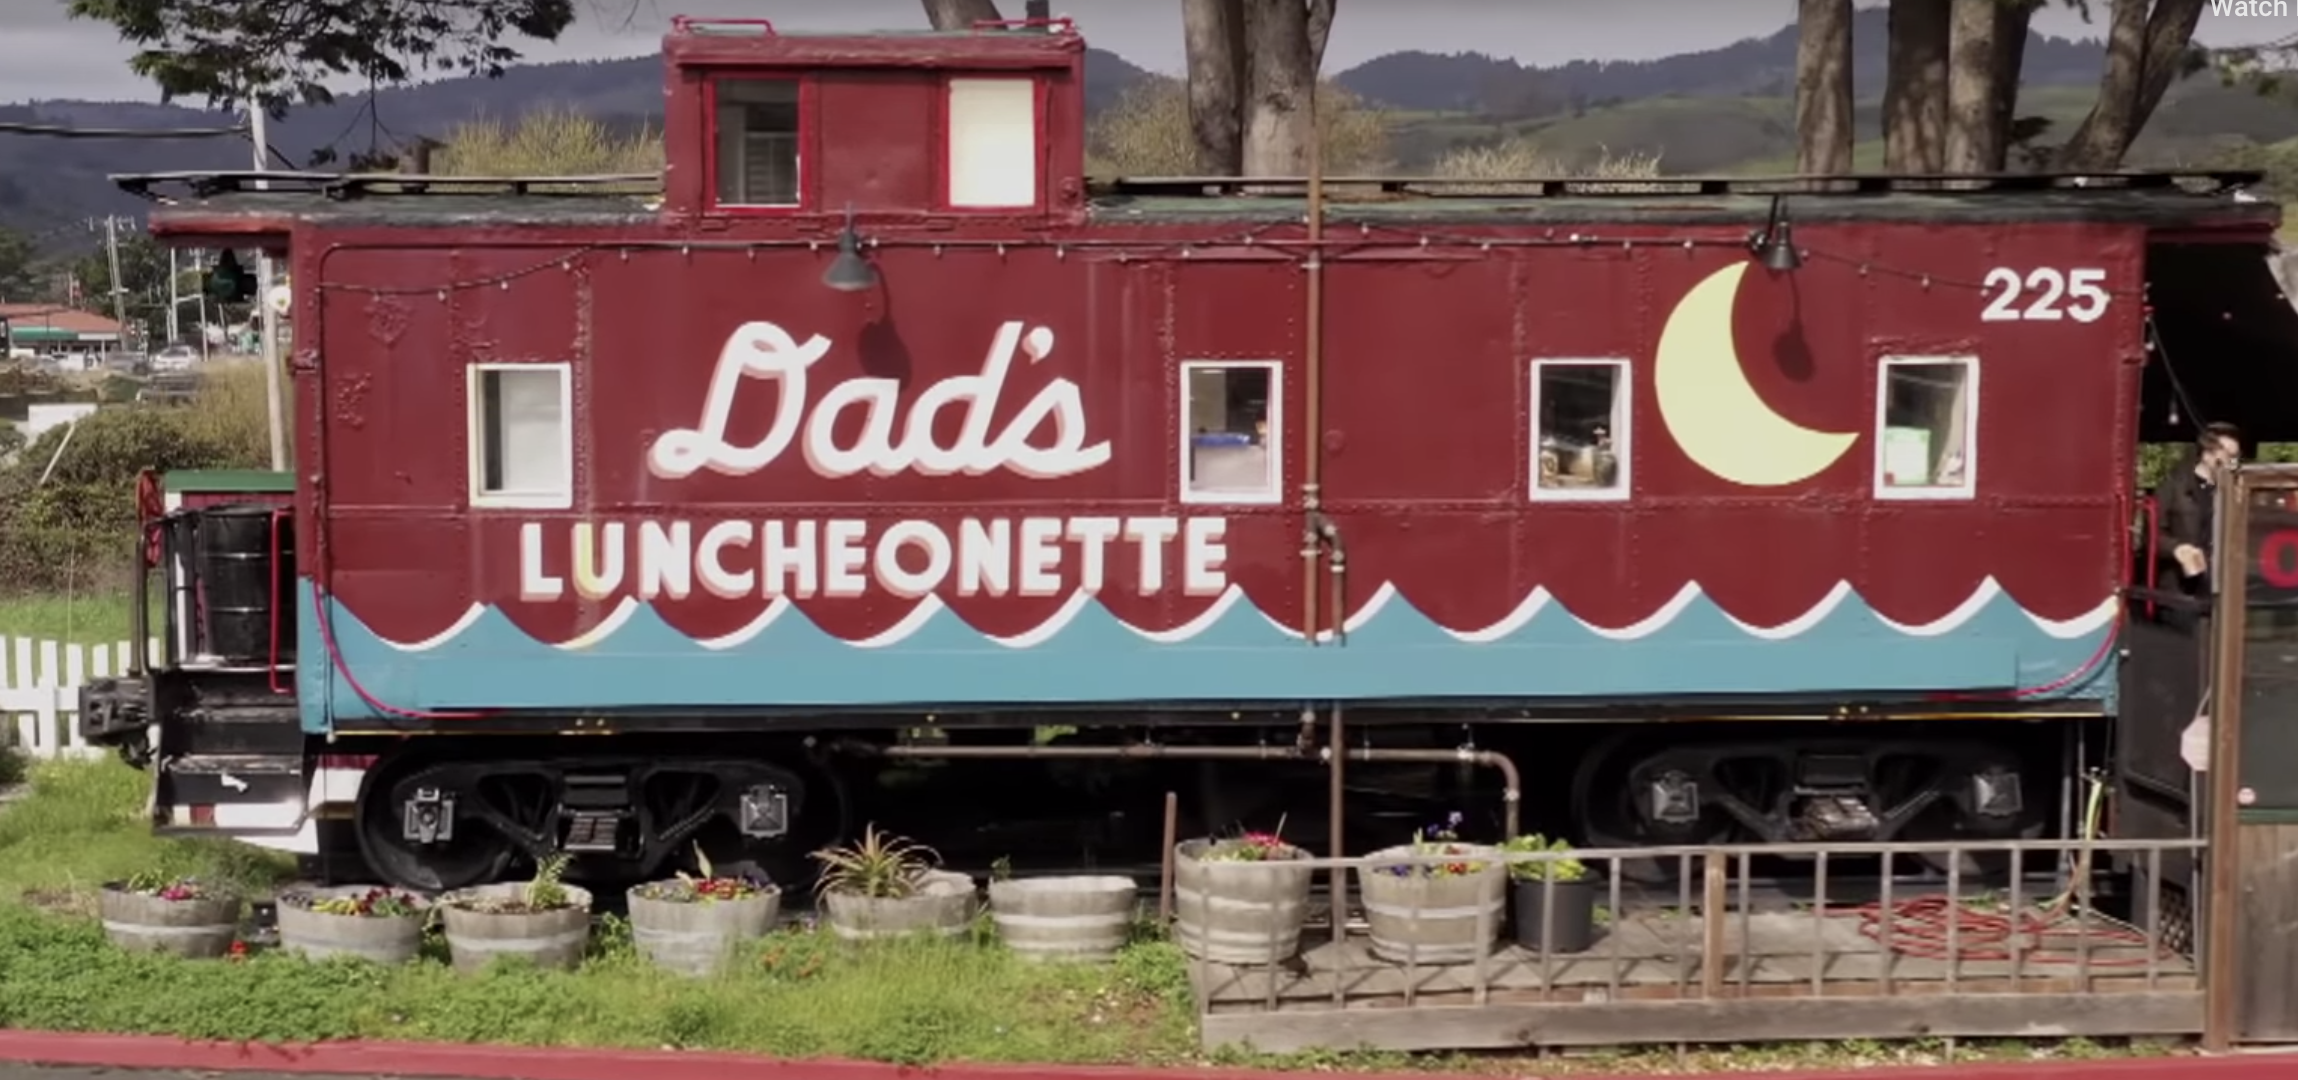 Check, Please! Bay Area - Dad's Luncheonette was featured in the season 14 premier of the popular Bay Area TV show.